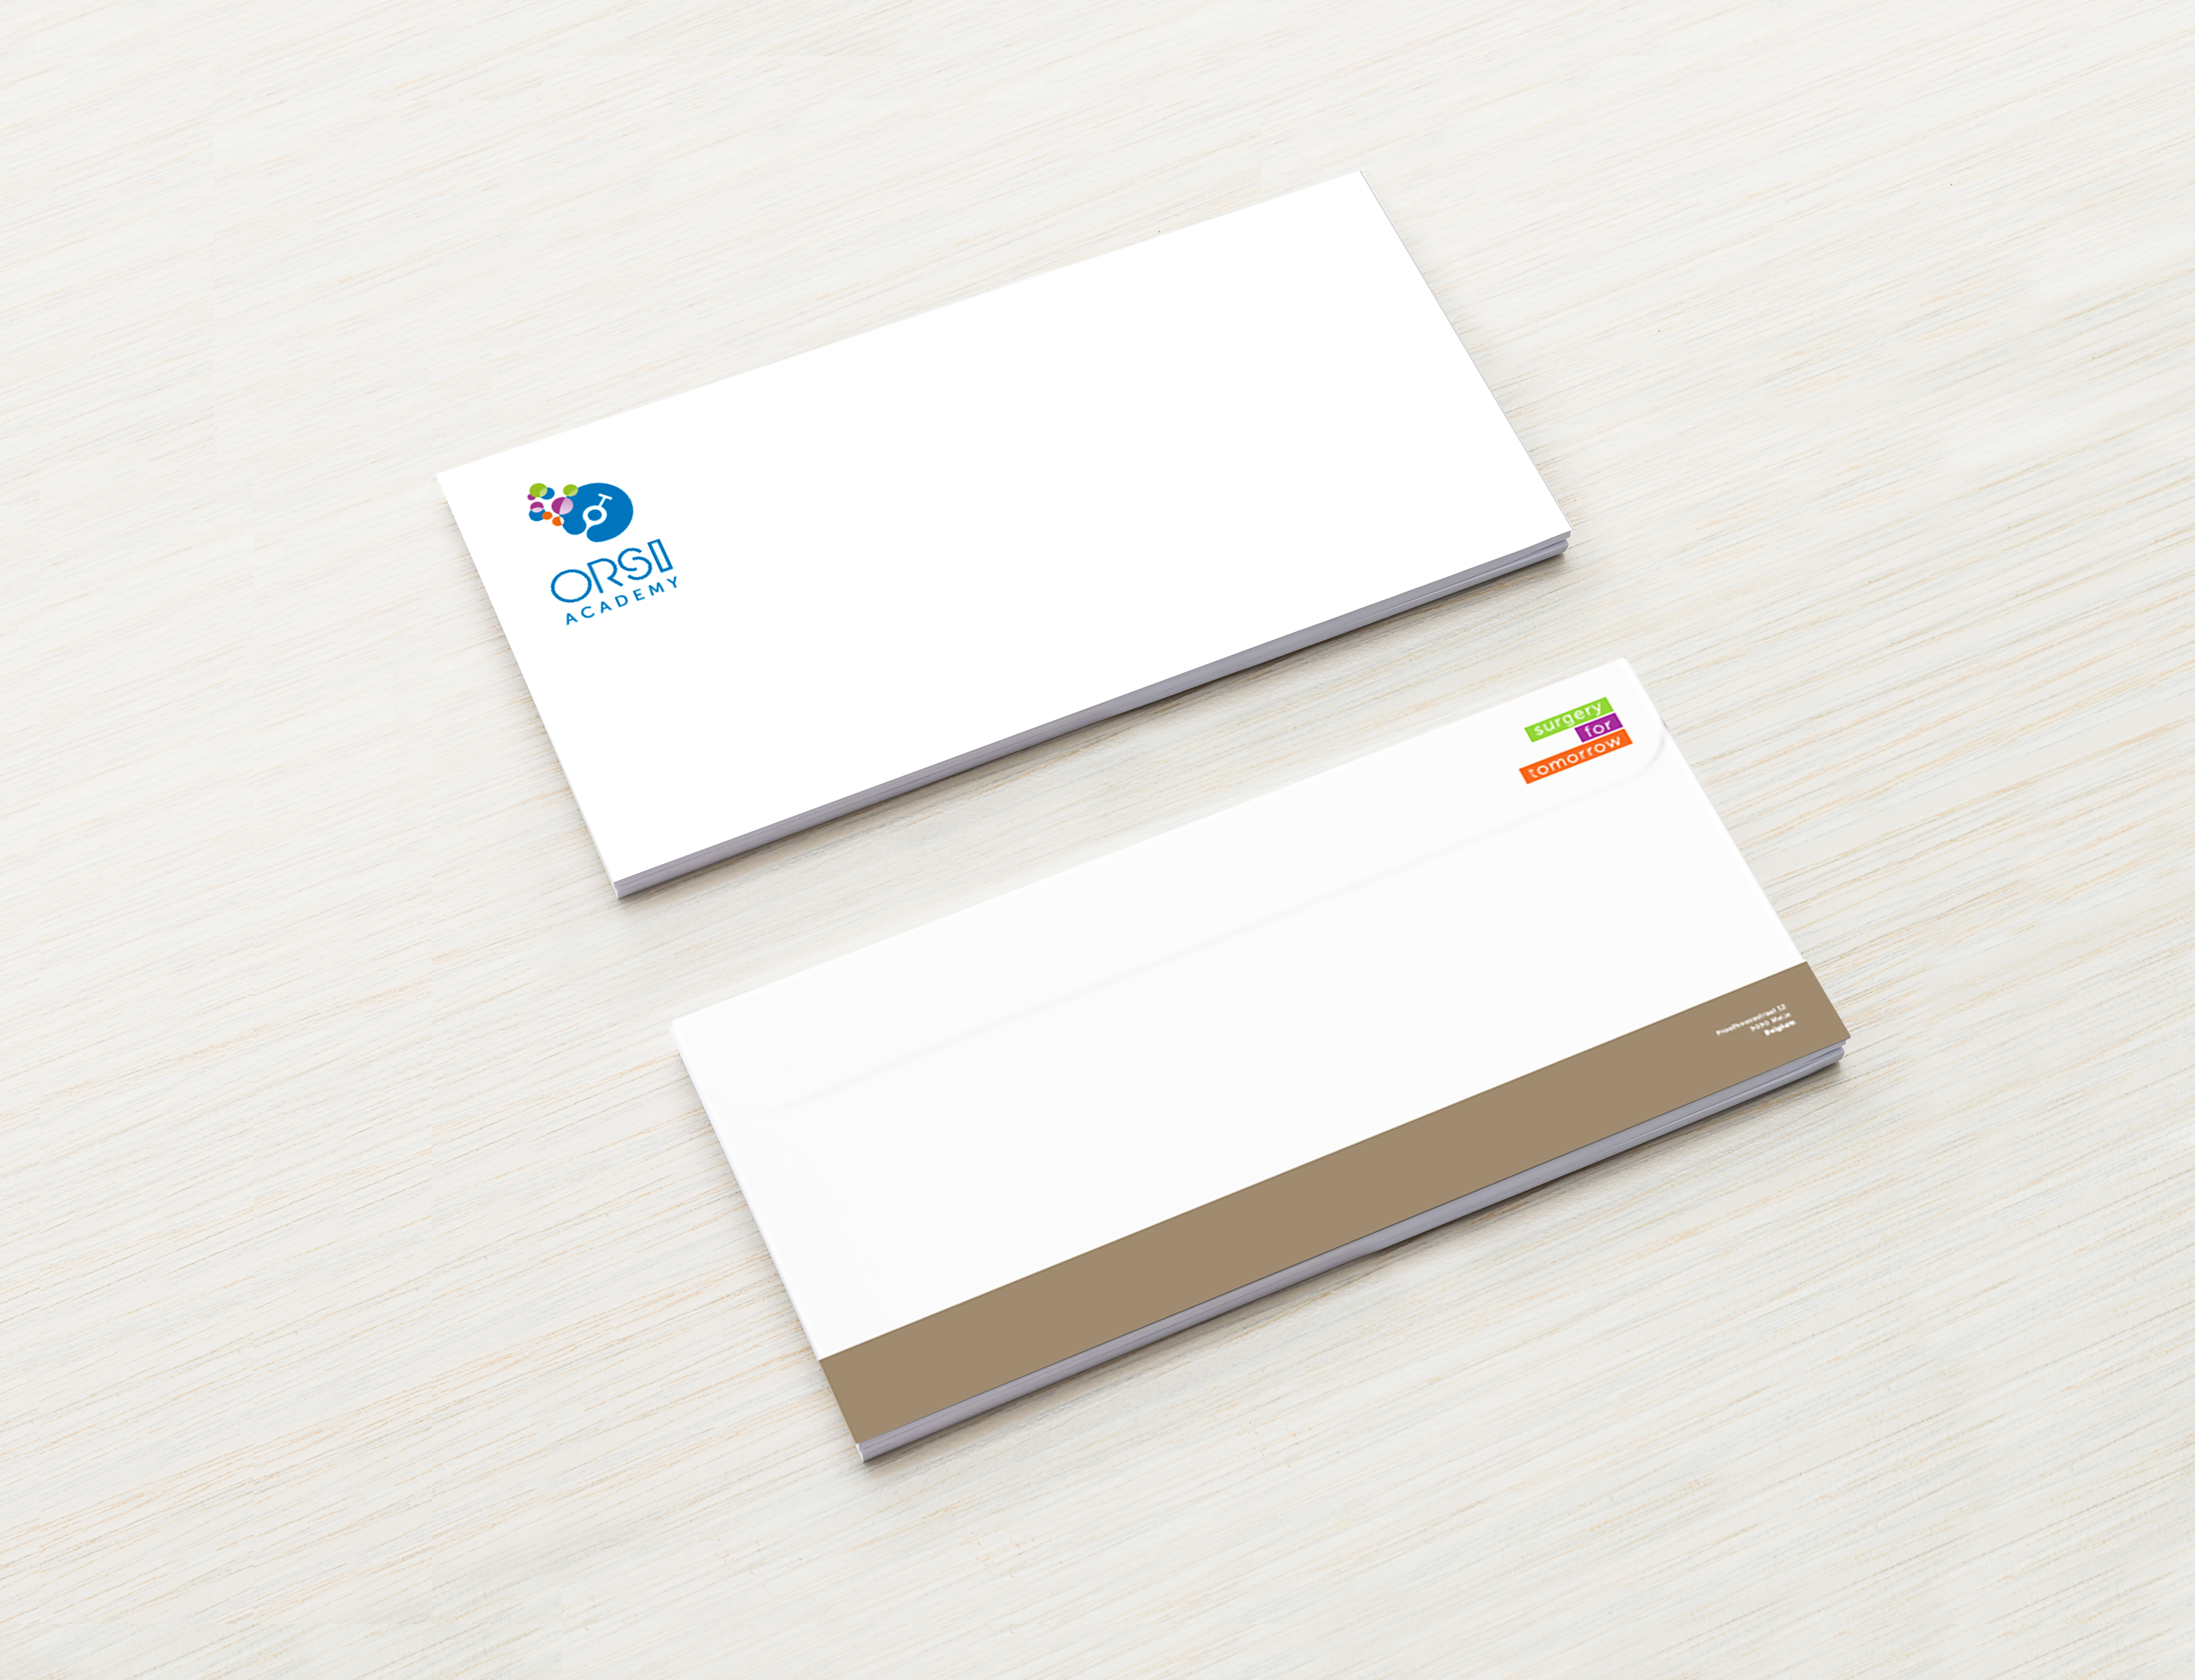 Orsi envelopes design